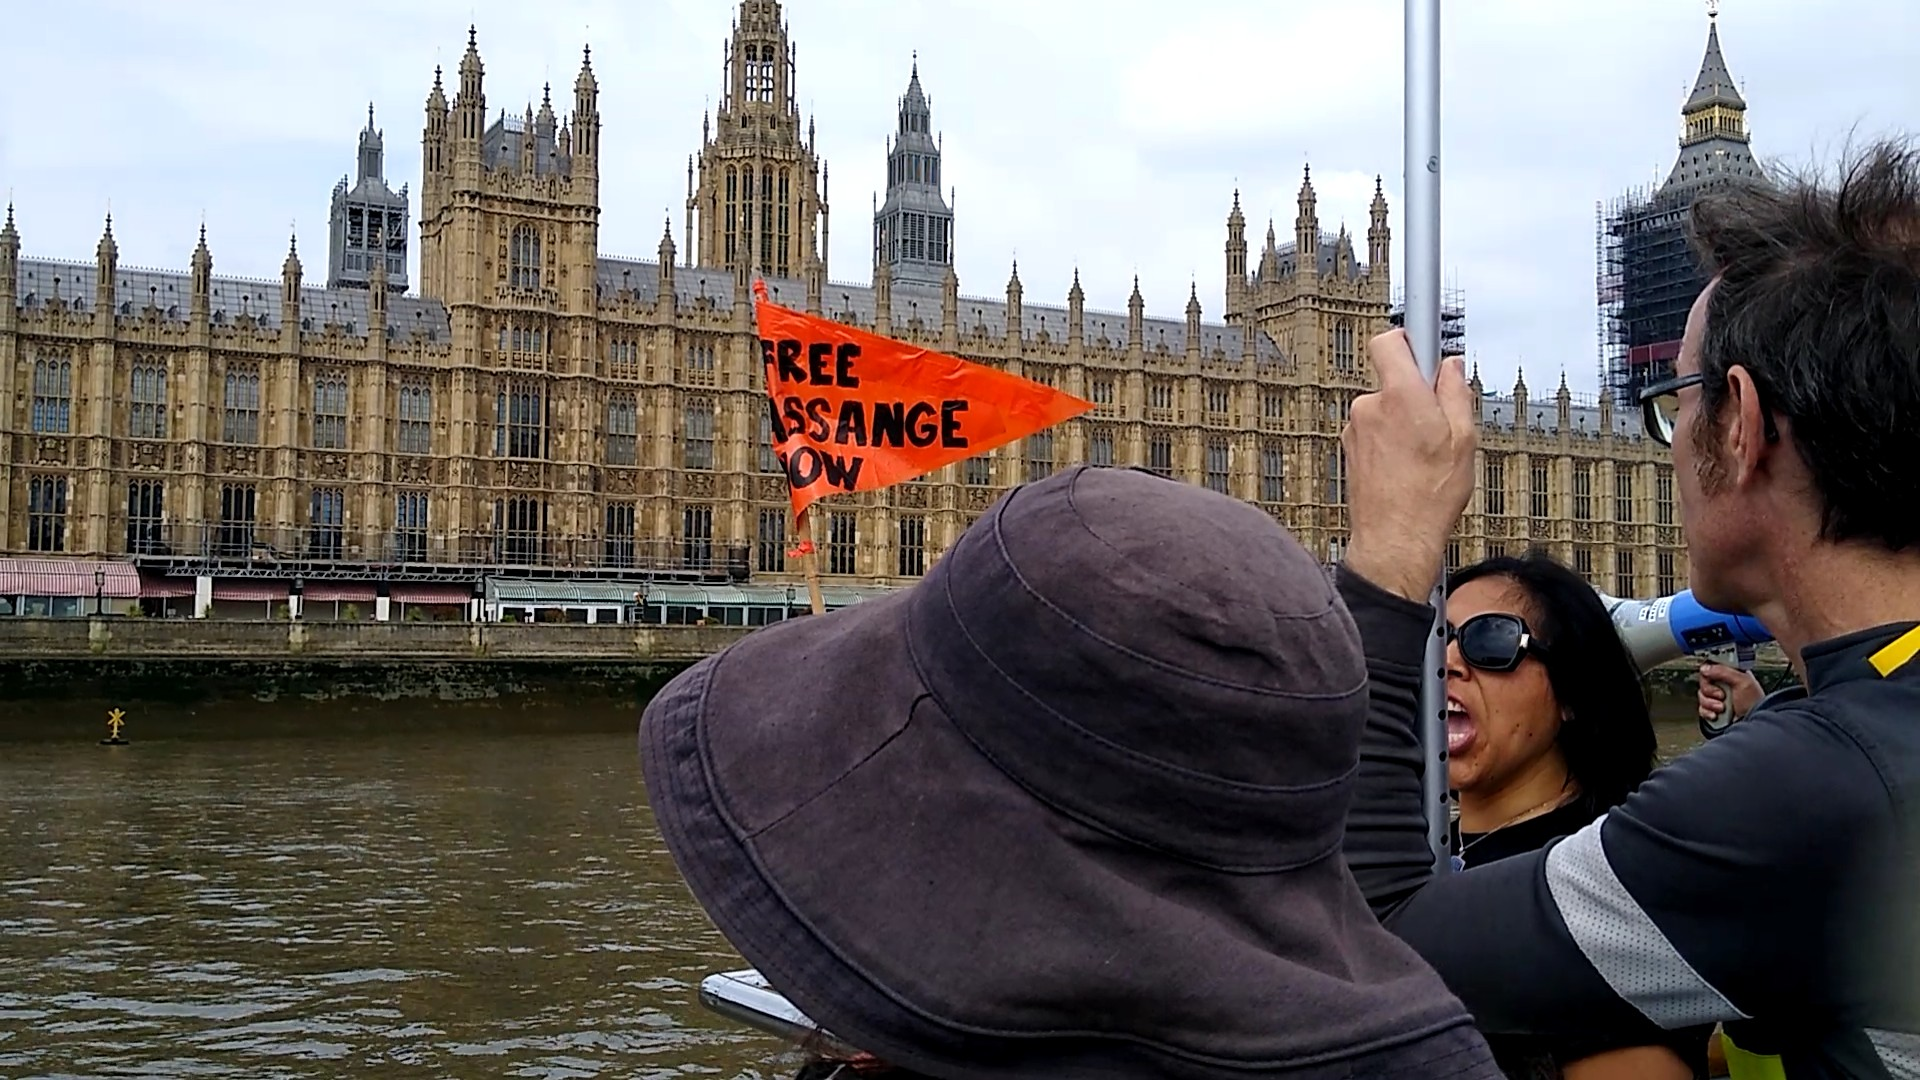 protest_photos:boatwestminster.jpg